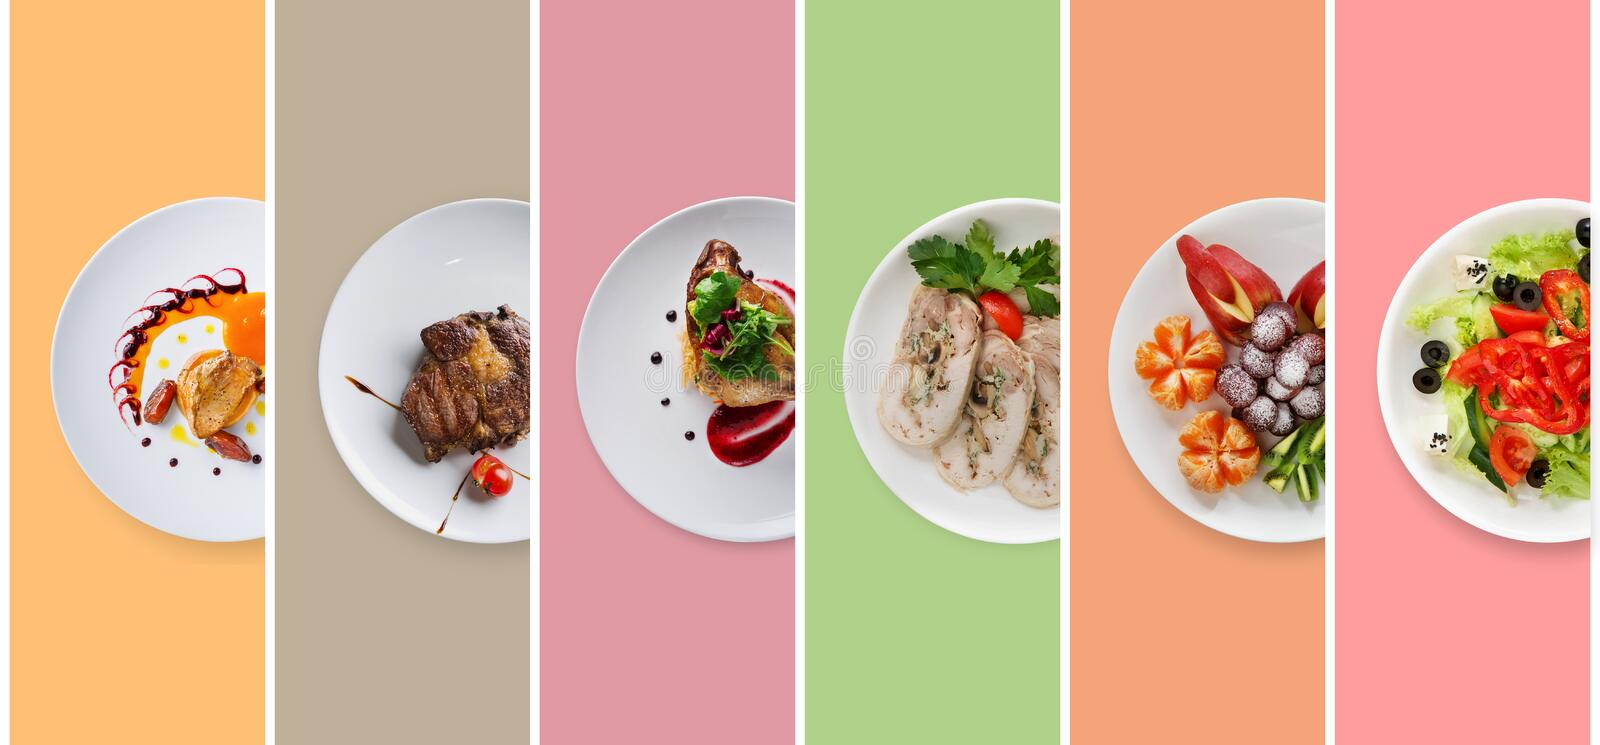 Collage of restaurant dishes on colorful background stock images